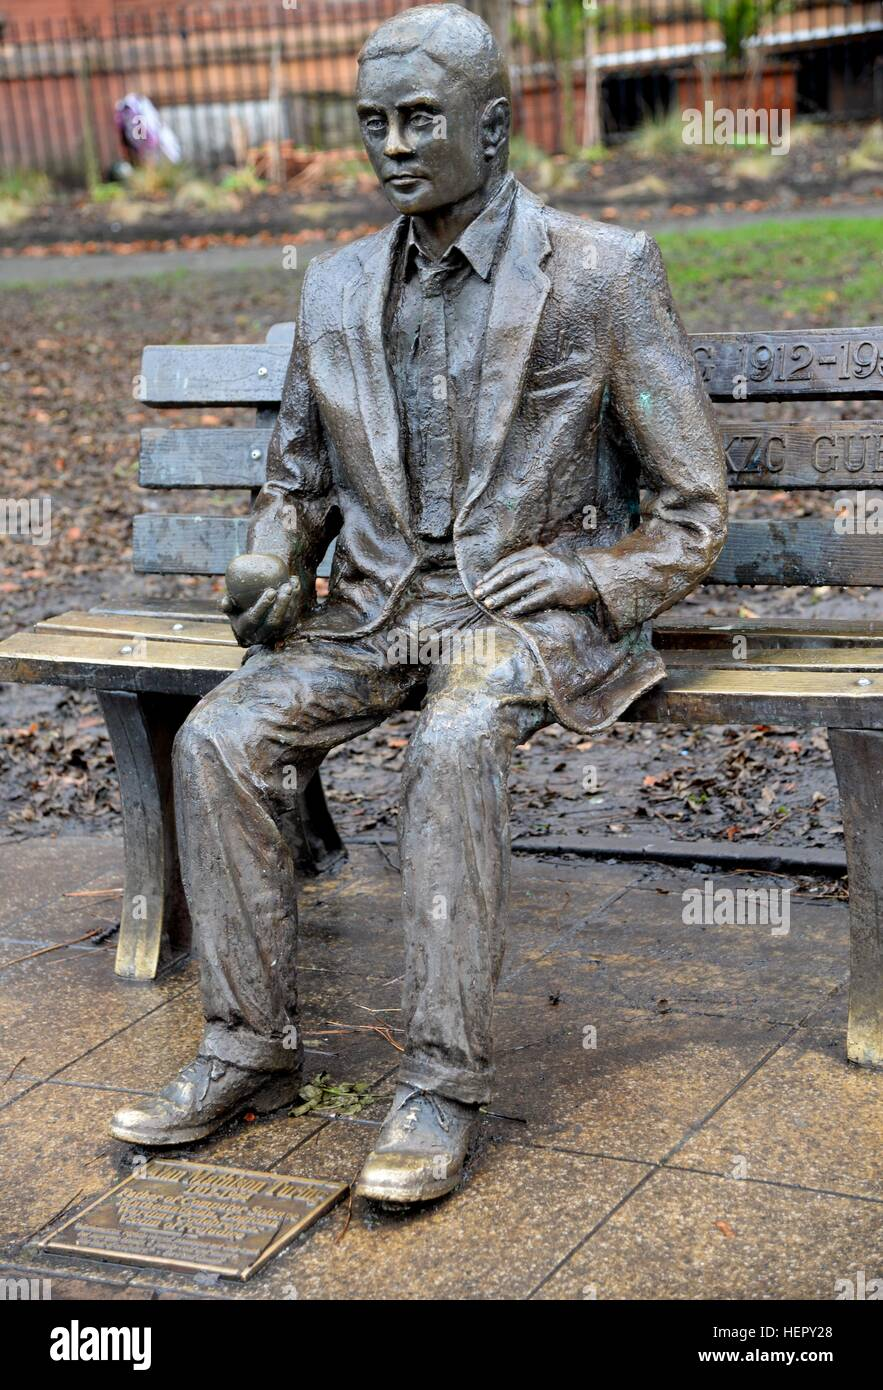 Alan Turing Statue, Manchester - Stock Image